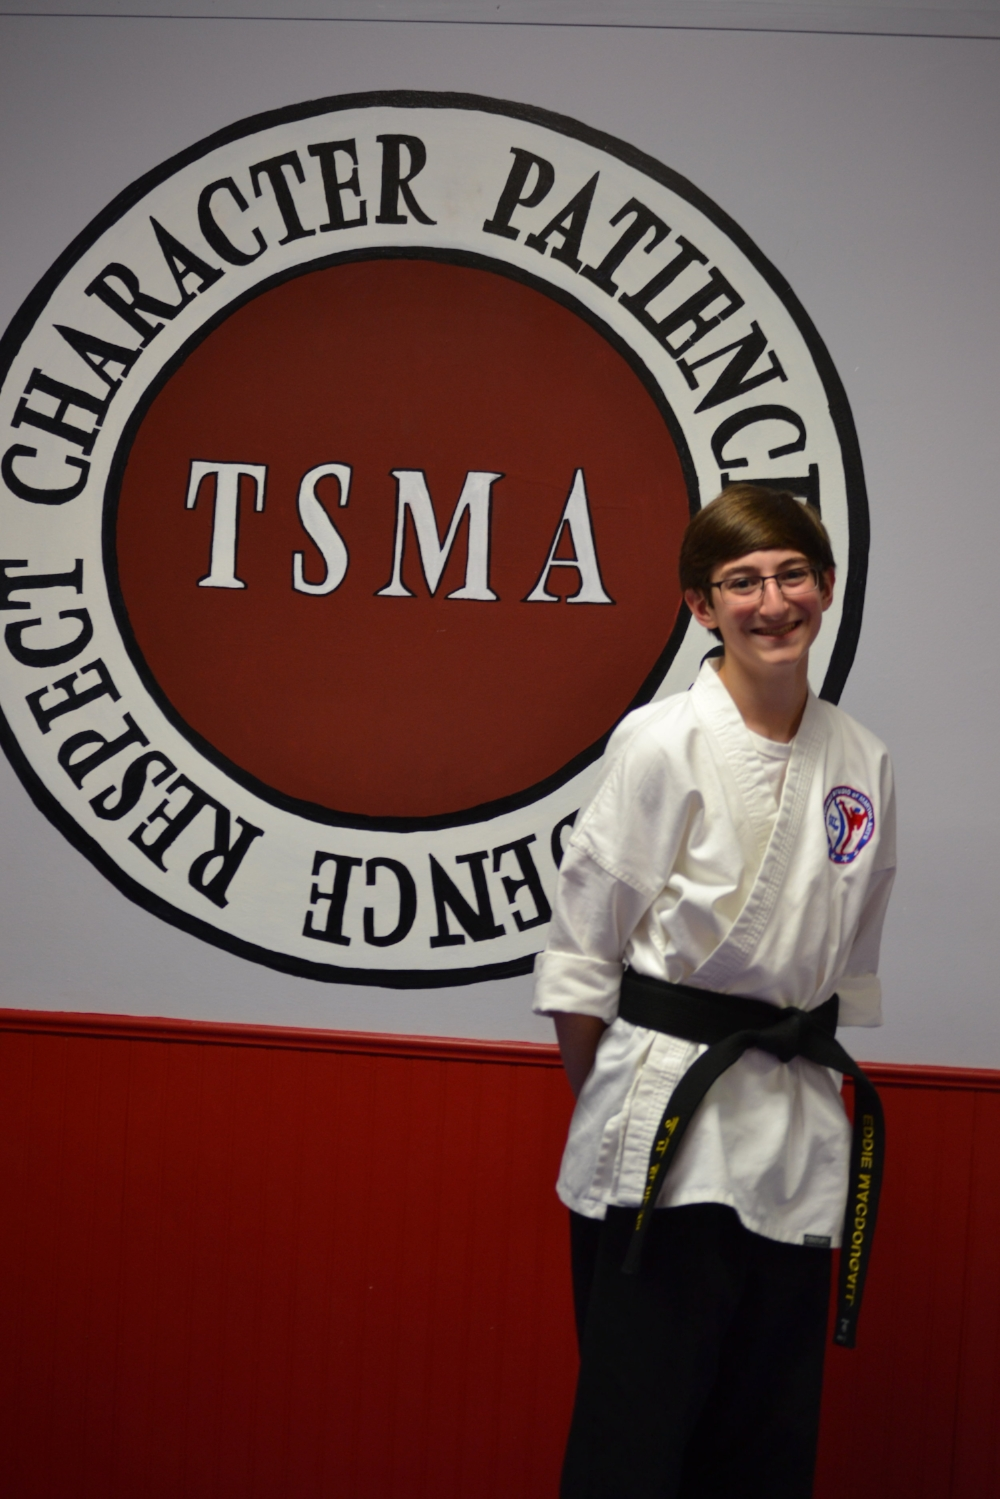 Eddie MacDougall joined TSMA when he was eight years old. He received his black belt on December 5, 2015. Eddie has been on the Demo and the Competition team. He has earned many medals at competitions. He also enjoys helping at Ninja camp in the summer. -